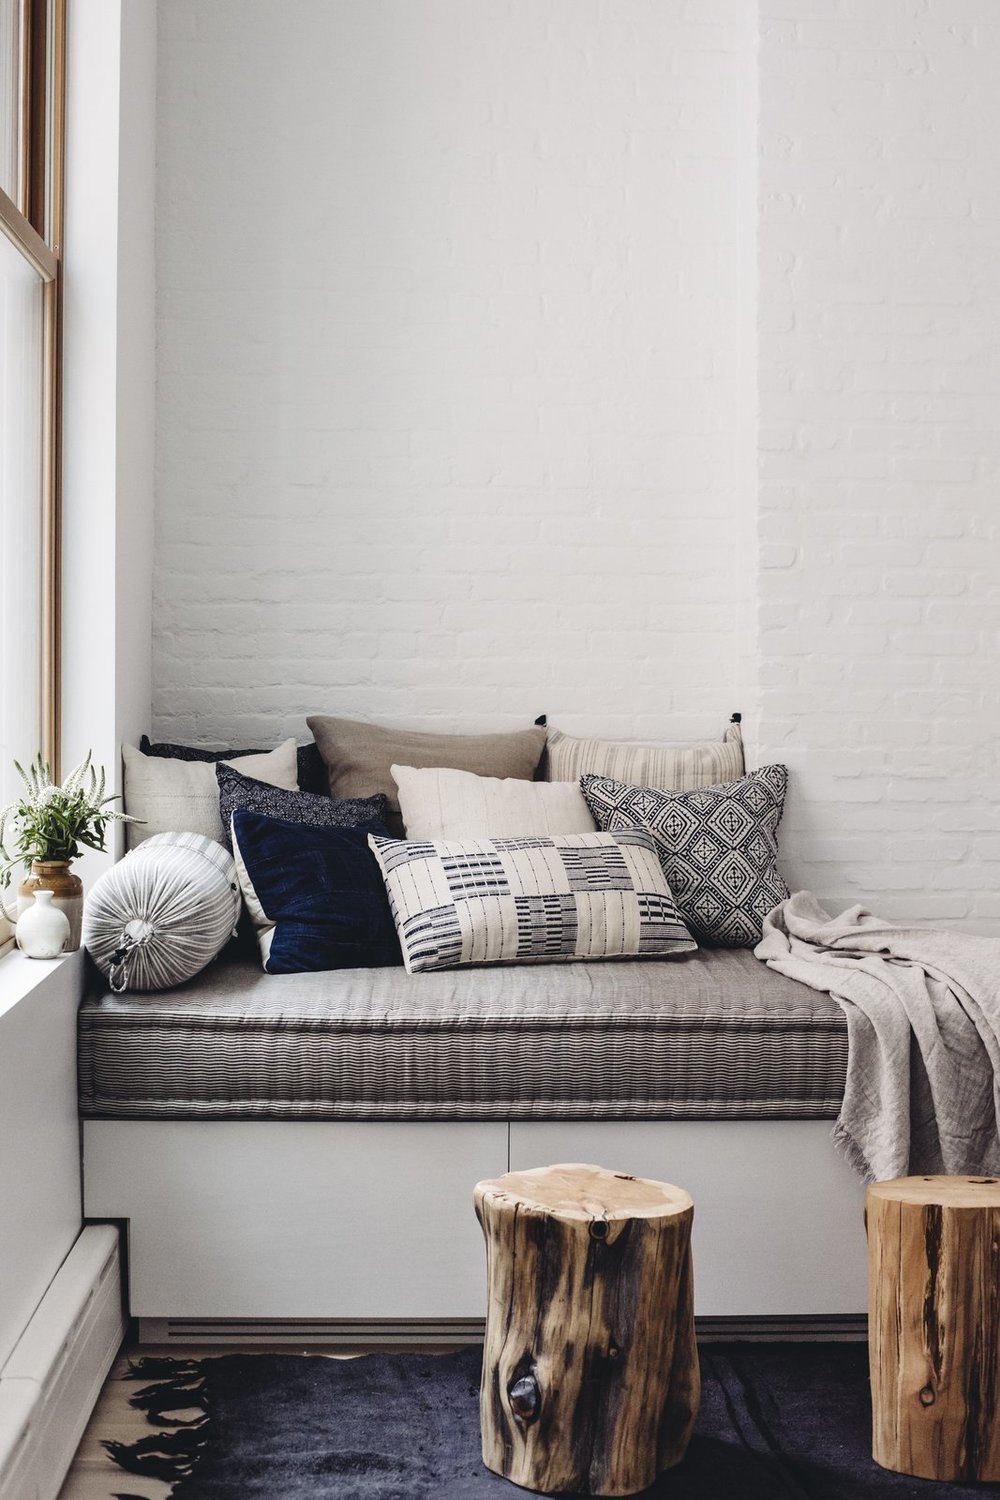 The built-in day bed by JFL Custom Builders provides a cozy corner. Topped with a pillow assortment by Walter G textiles, Bungalow Decor, and Injiri, it's ideal for cuddling up with a book and a blanket. West Elm wood stumps and an antique hemp rug round out the space with some added depth. (Chloe Leroux)